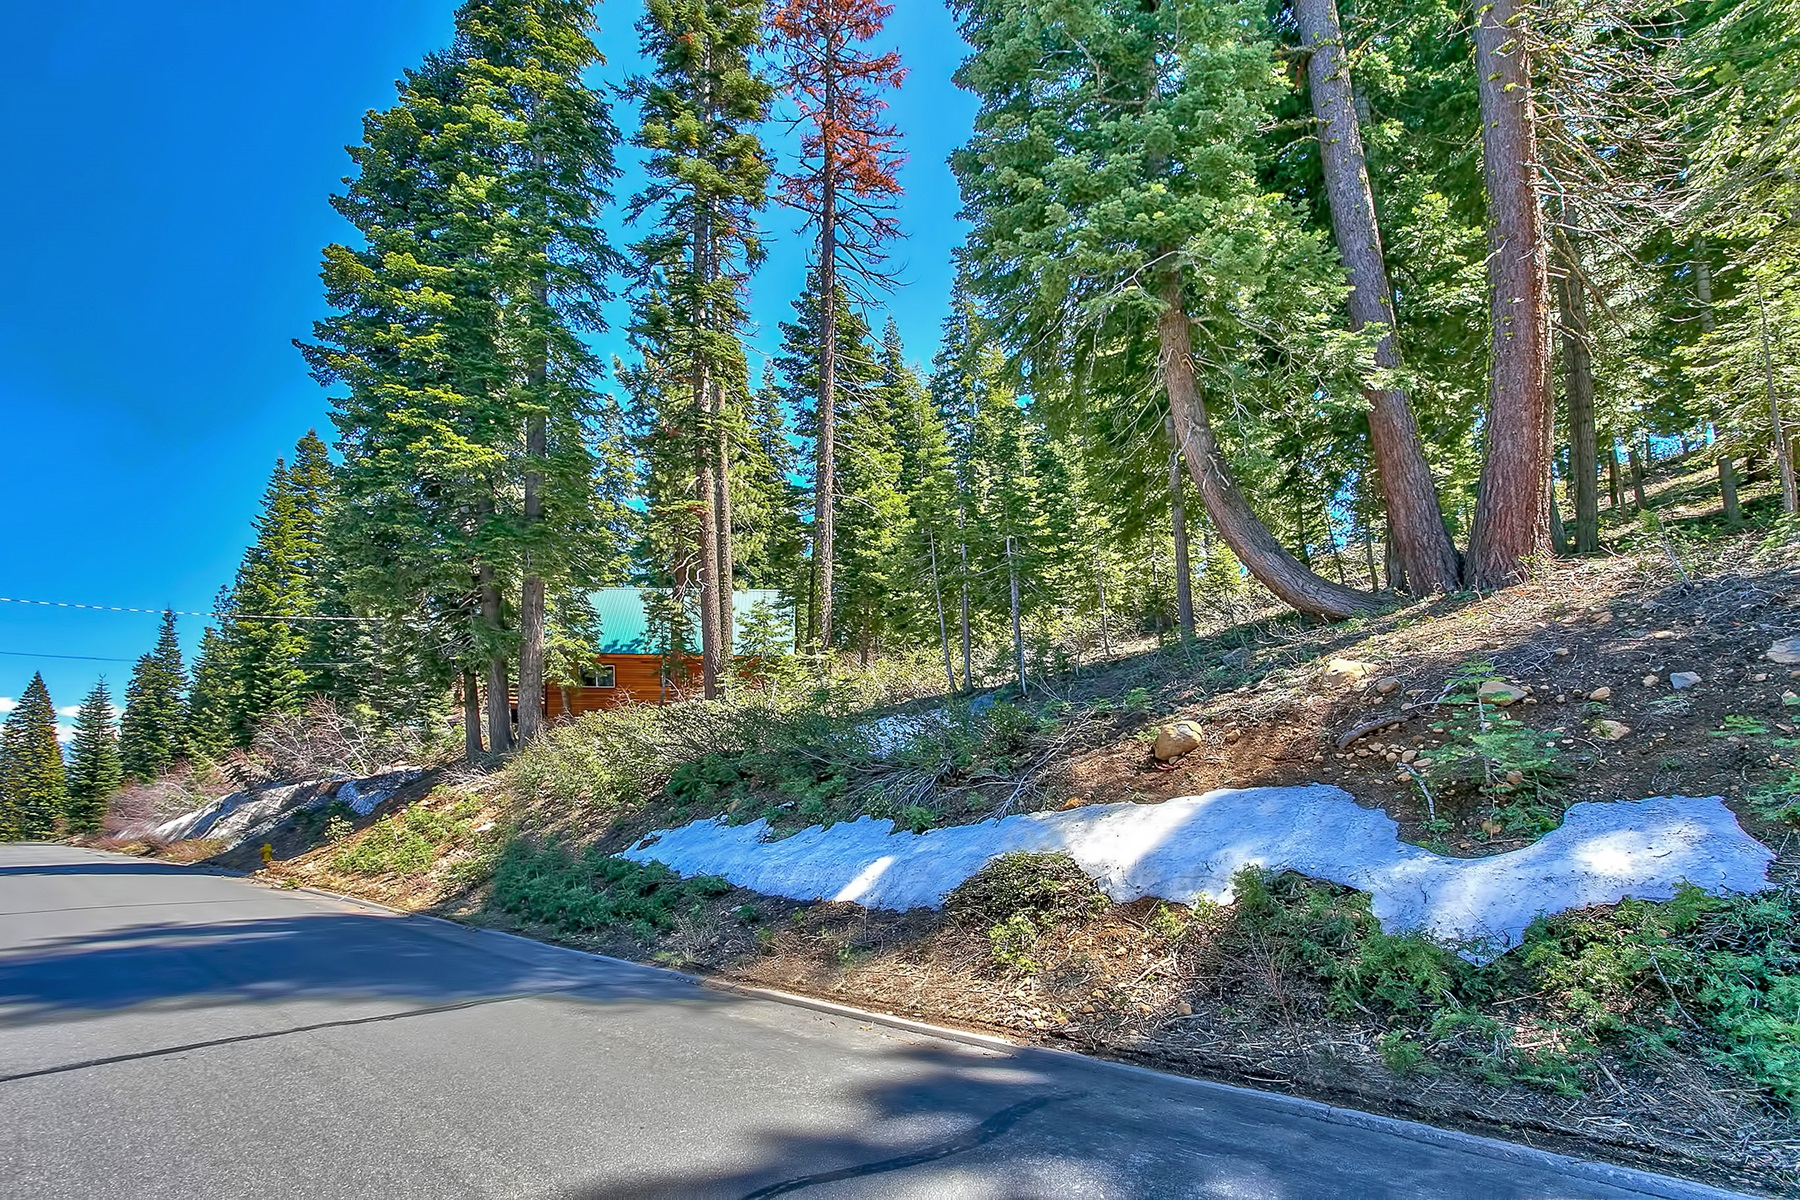 Additional photo for property listing at 11260 Skislope Way, Truckee, CA 11260 Skislope Way 特拉基, 加利福尼亚州 96161 美国